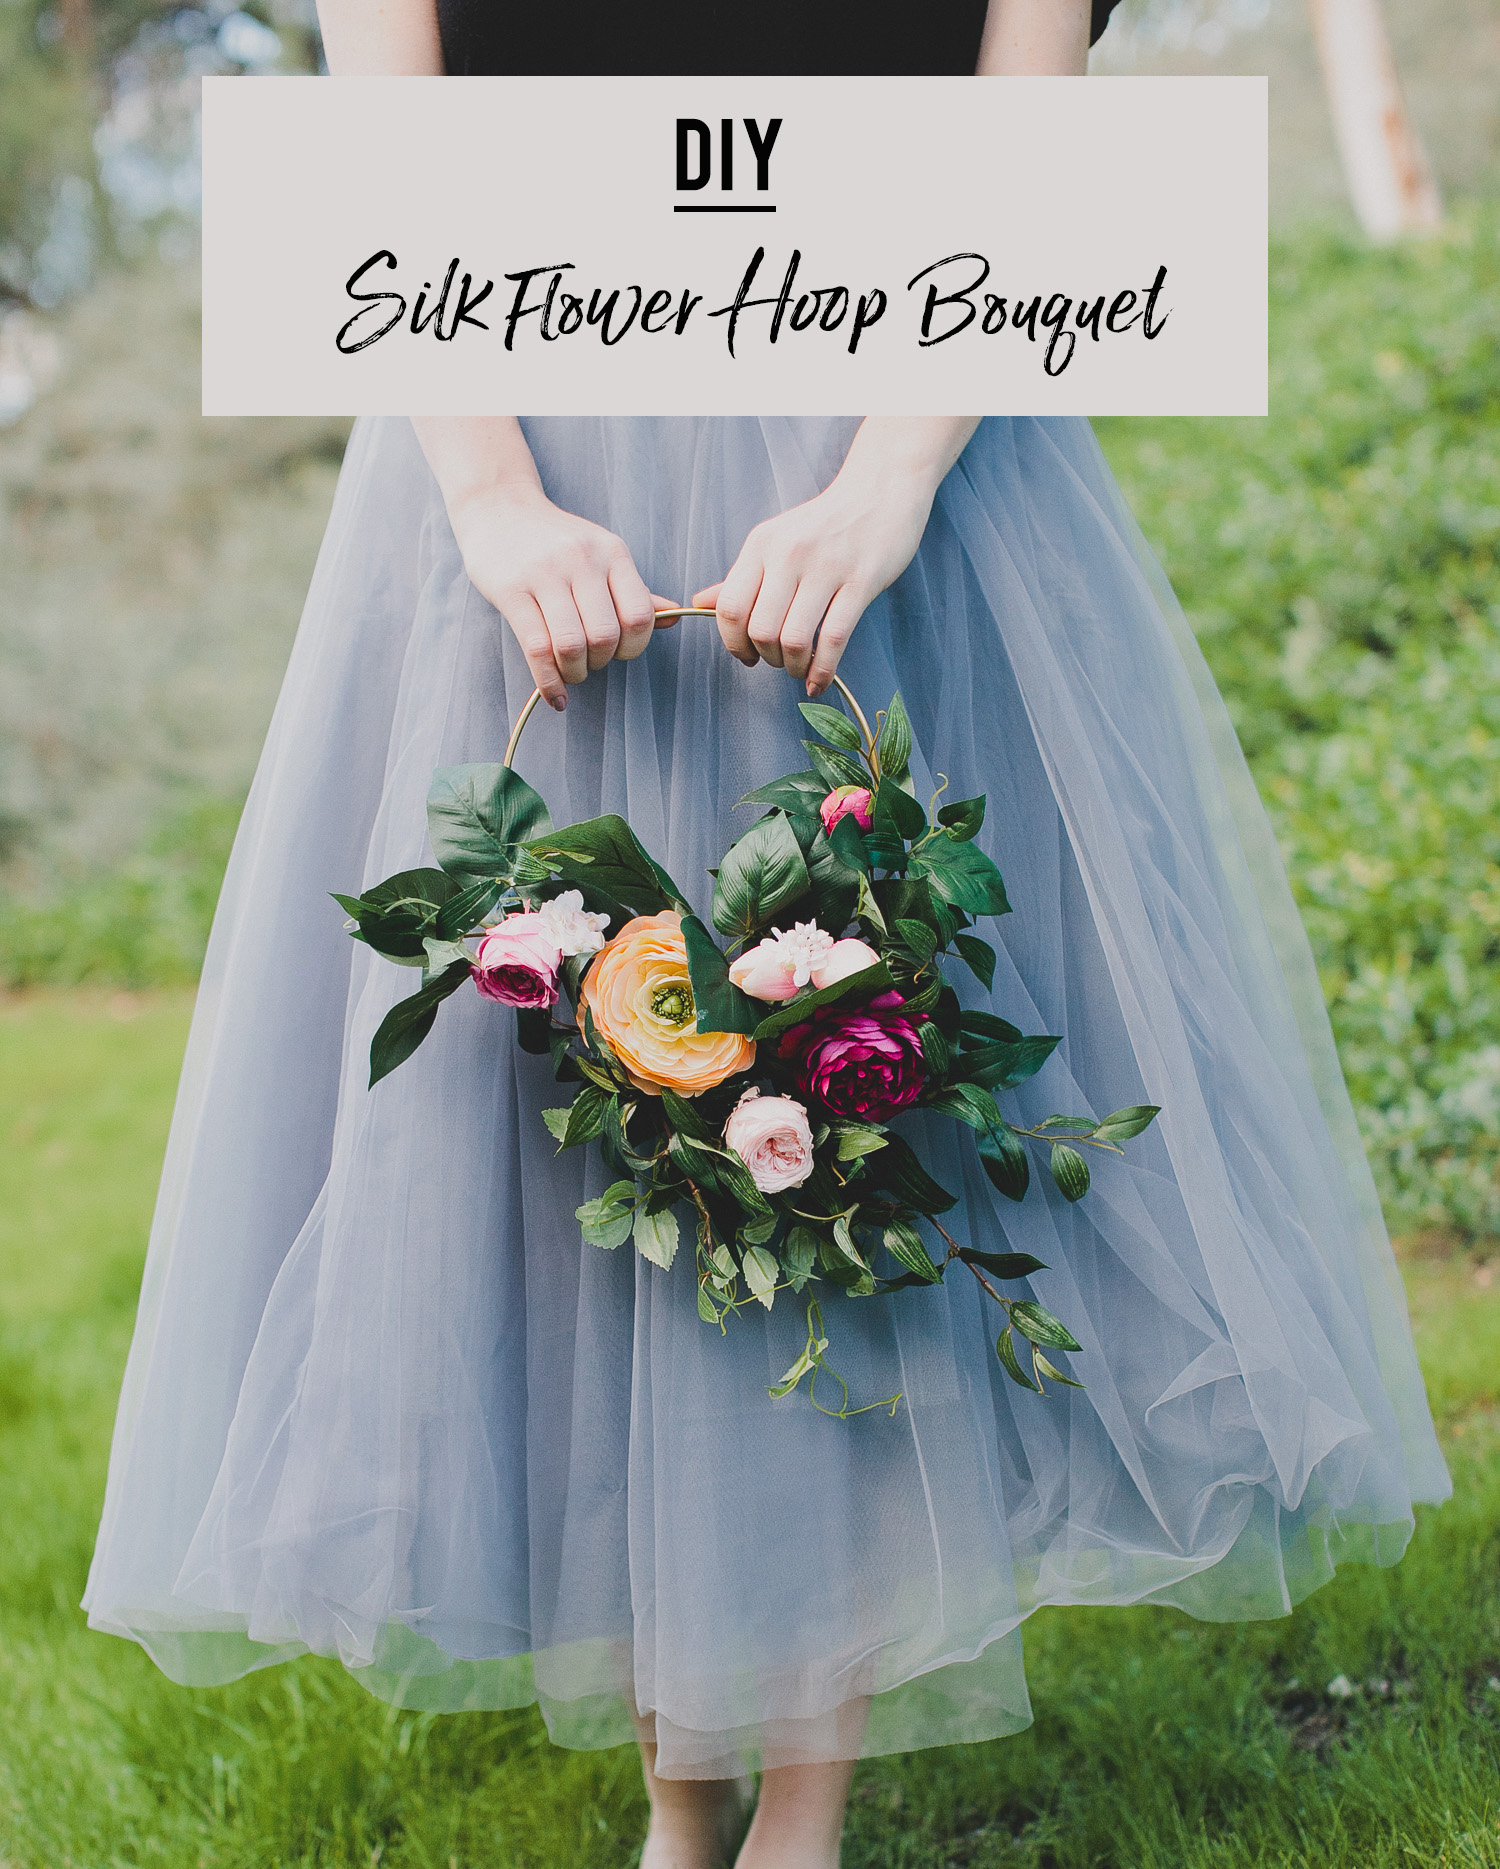 Silk Flower Hoop Bouquet DIY